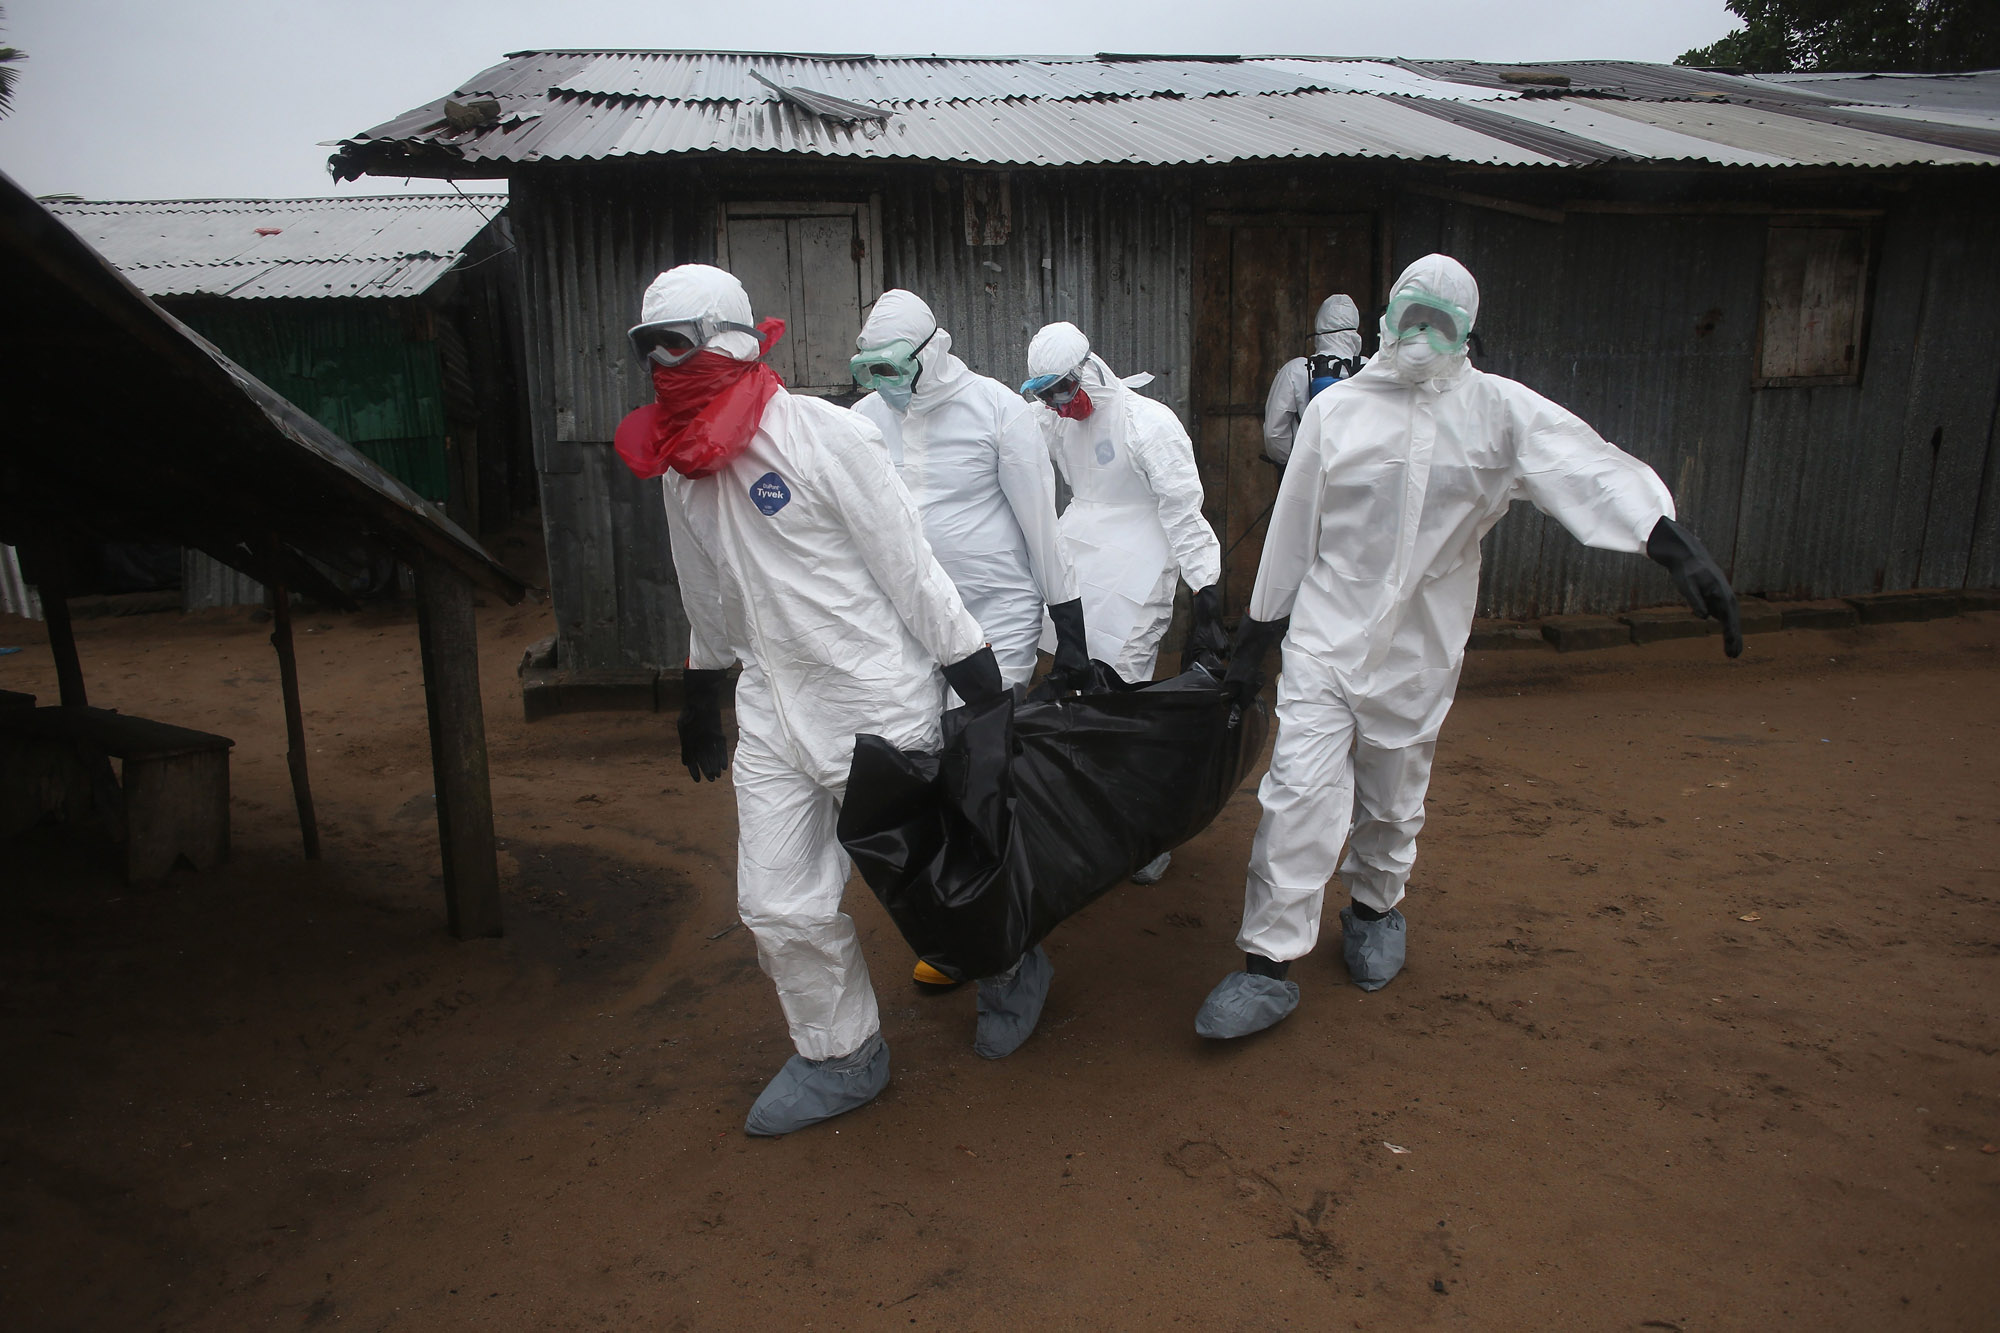 A Liberian burial team wearing protective clothing retrieves the body of a 60-year-old Ebola victim from his home on Aug. 17, 2014 near Monrovia, Liberia.